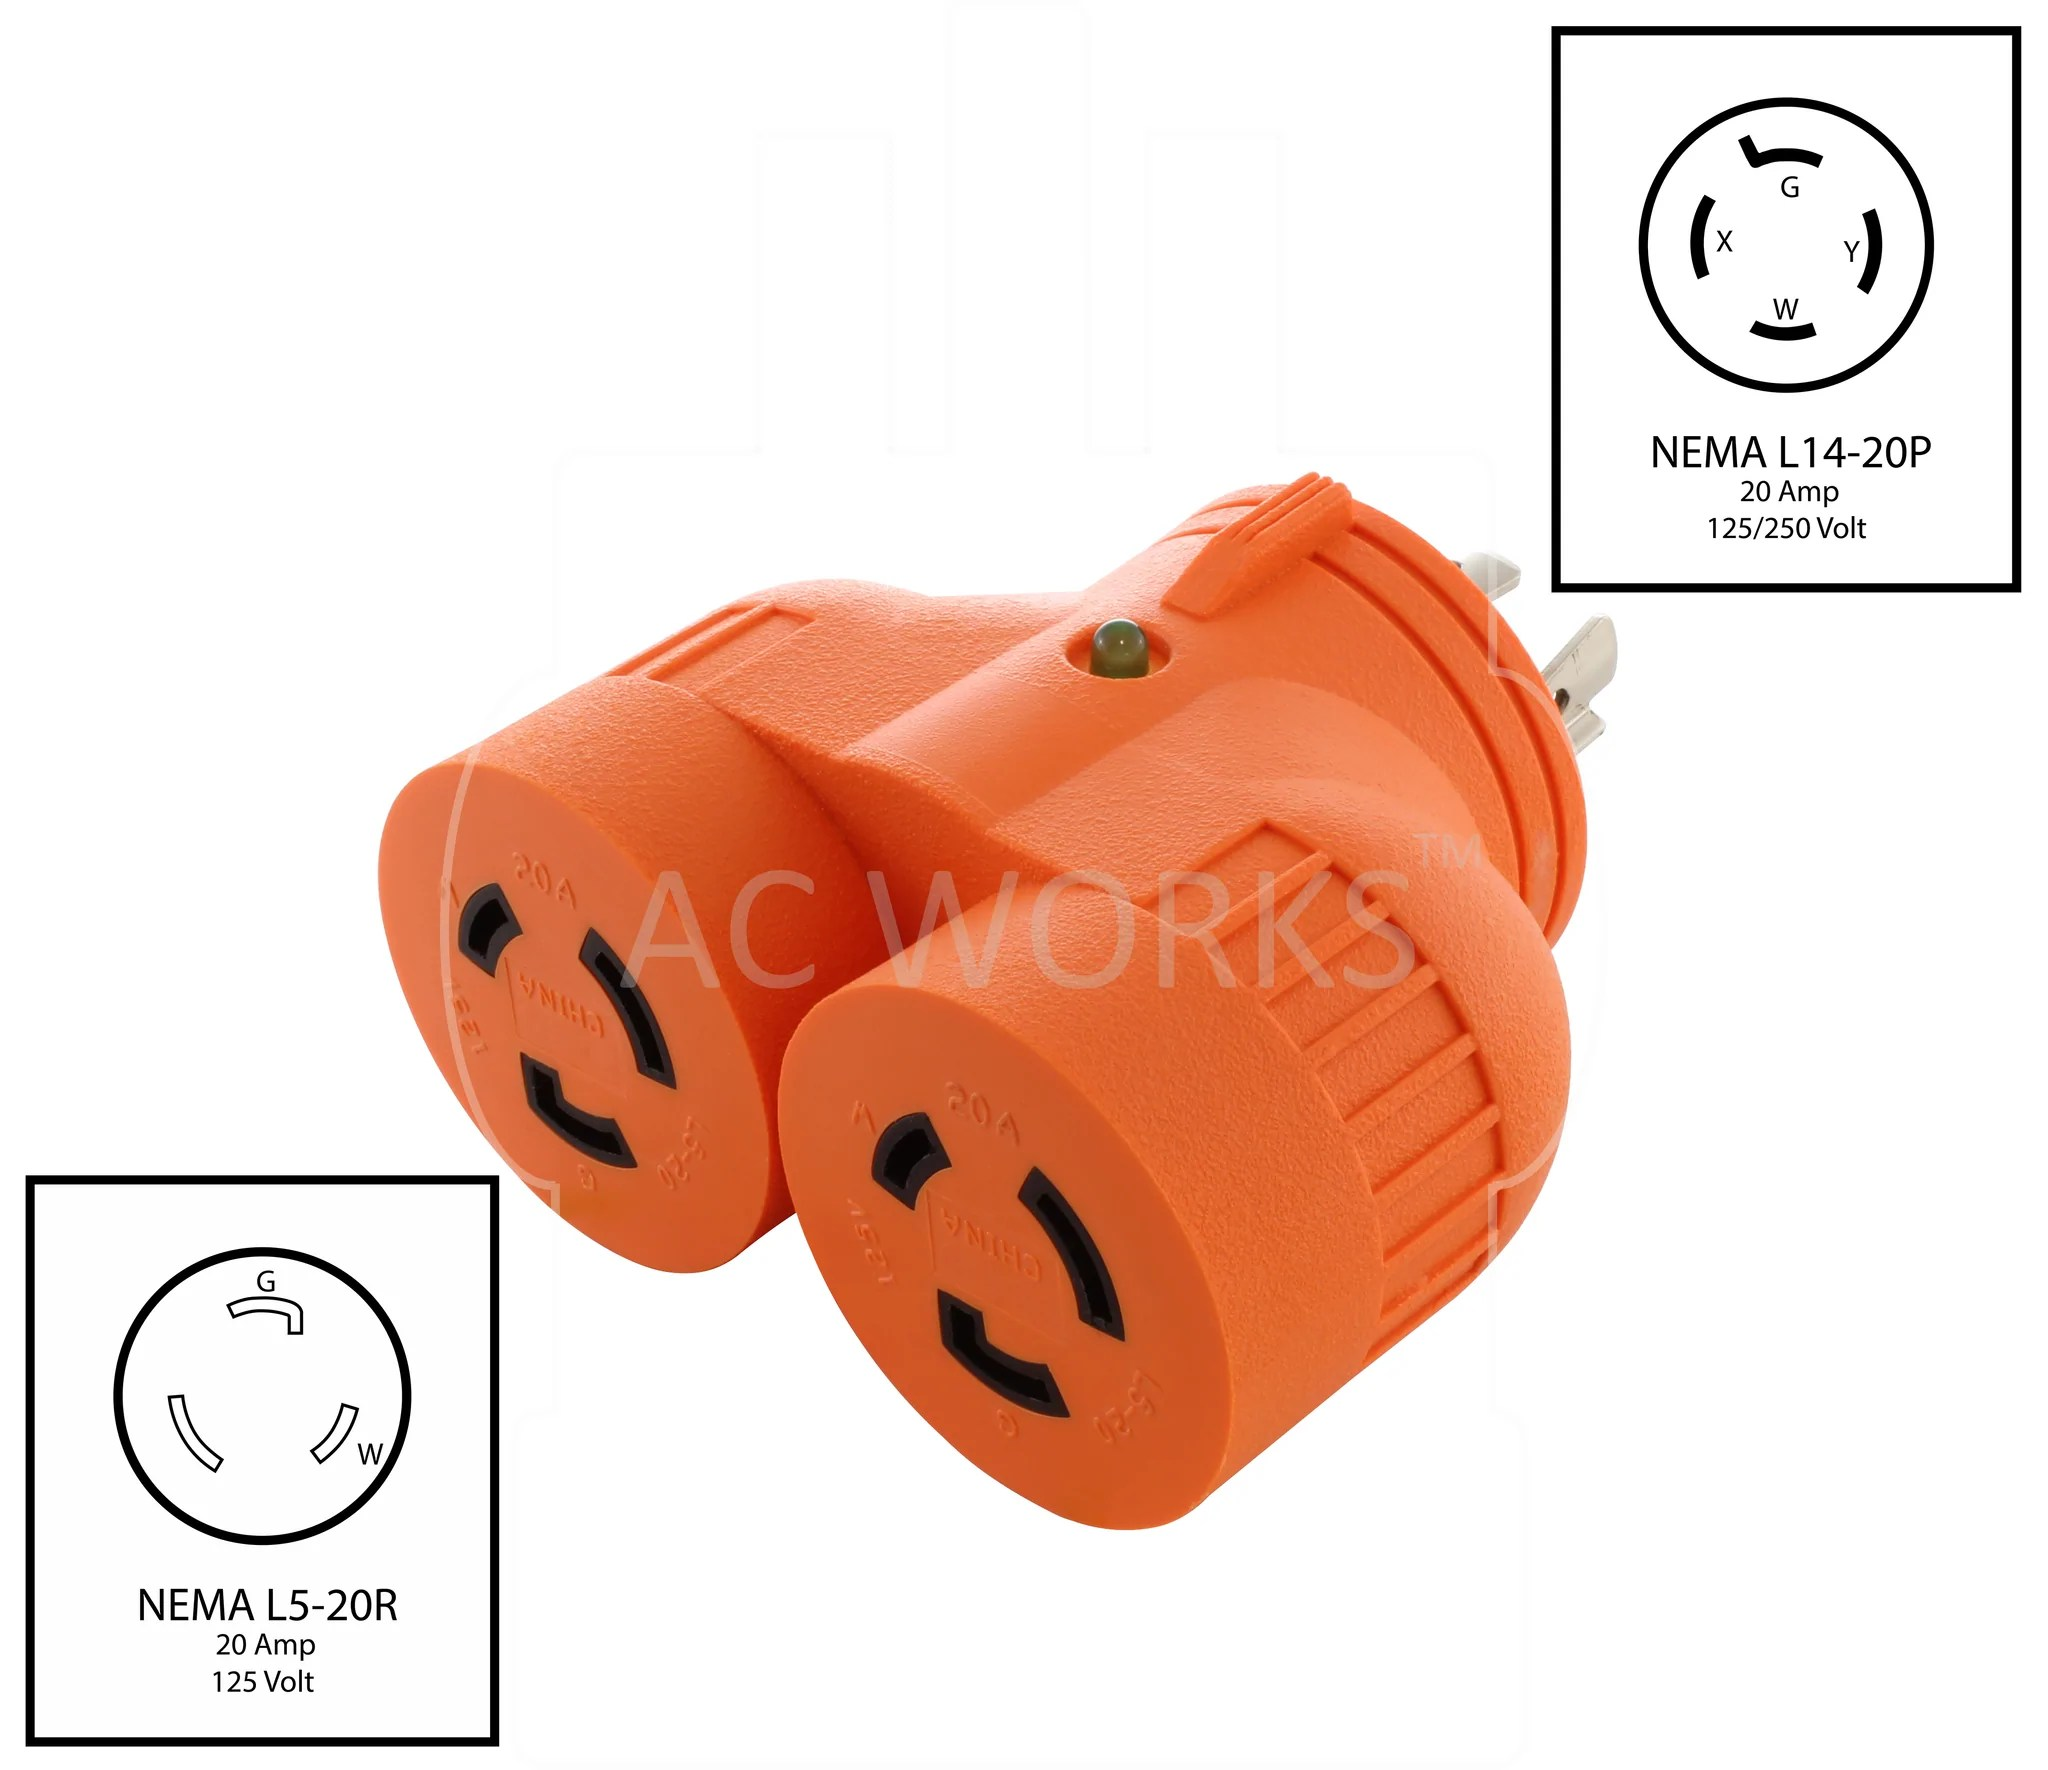 hight resolution of  nema l14 20p to 2 nema l5 20r l1420 plug to l520 connectors